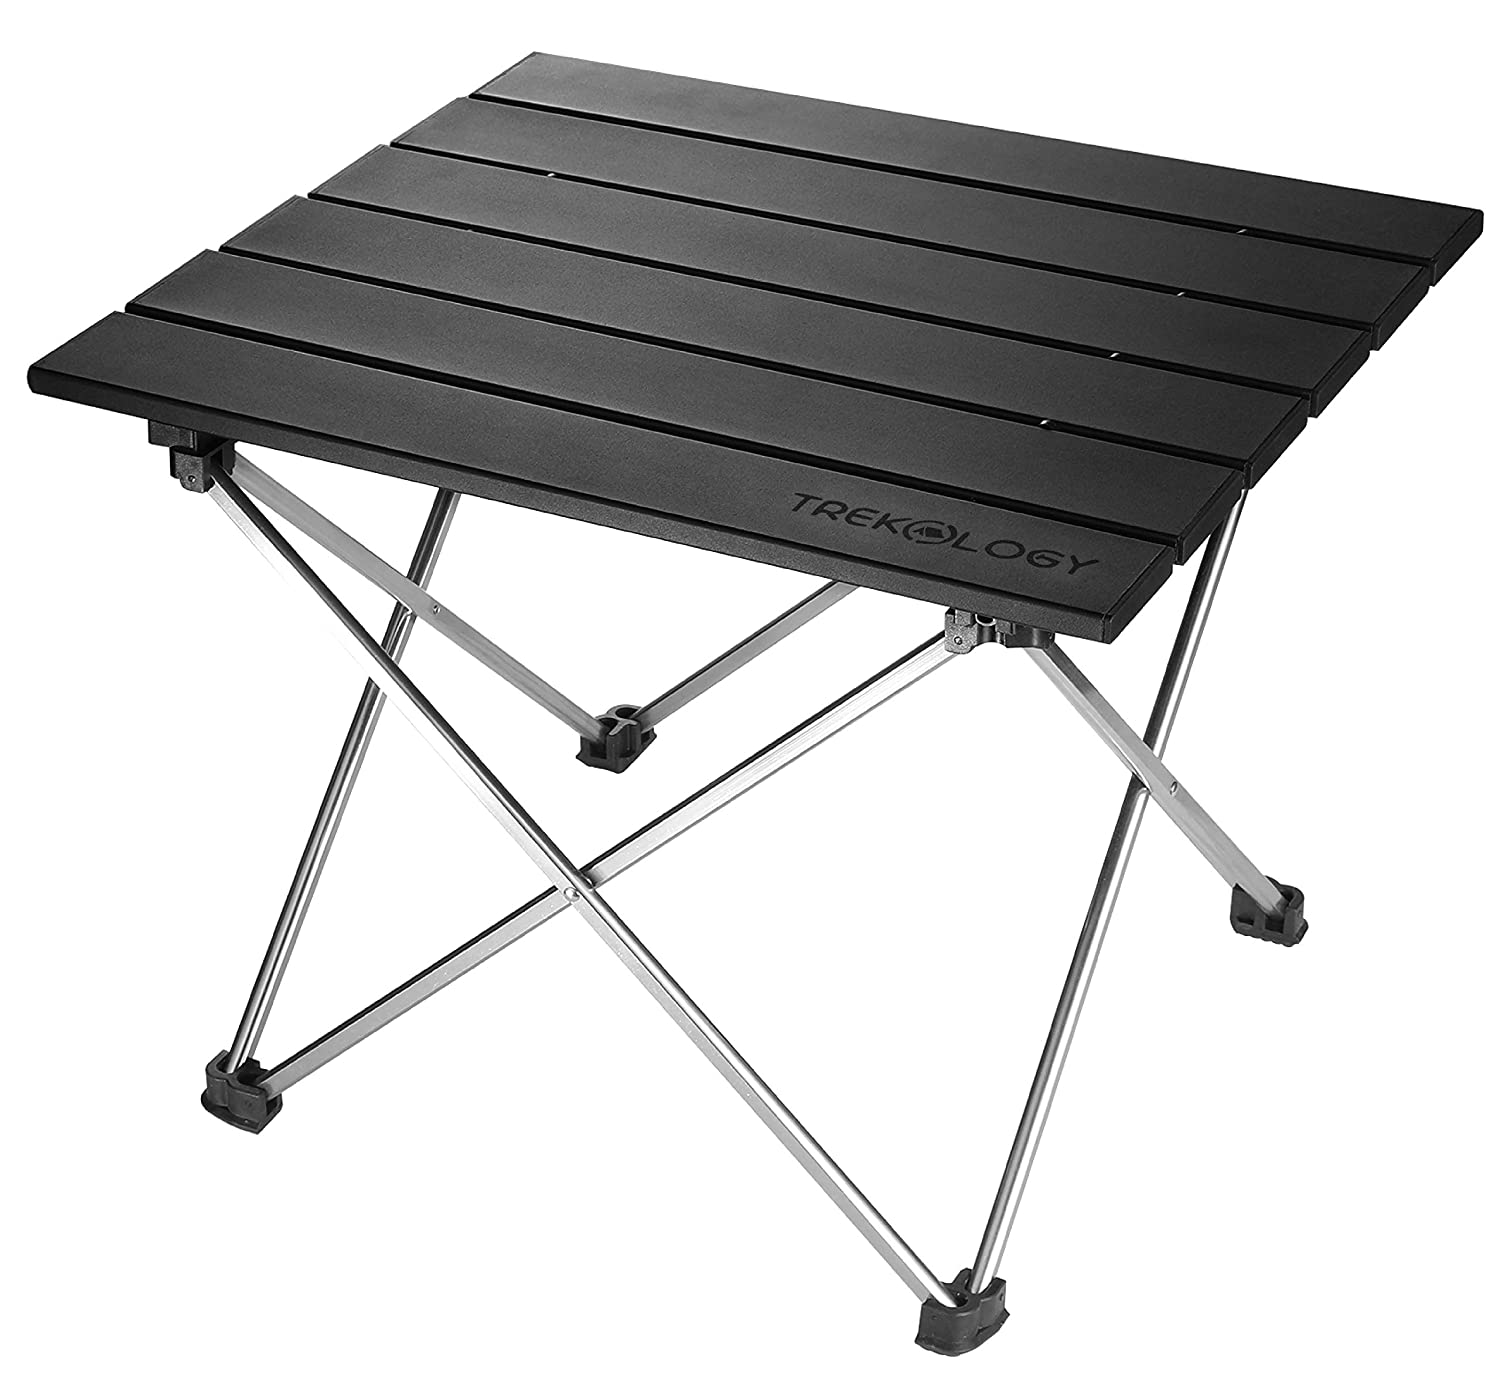 Folding Camping Table Portable - Small Folding Beach Table - Portable Picnic Table - Small Aluminum Side Table Lightweight Cam Table for Biking,Backpacking Camp, RV, Car, Travel, Motorcycle, Fishing